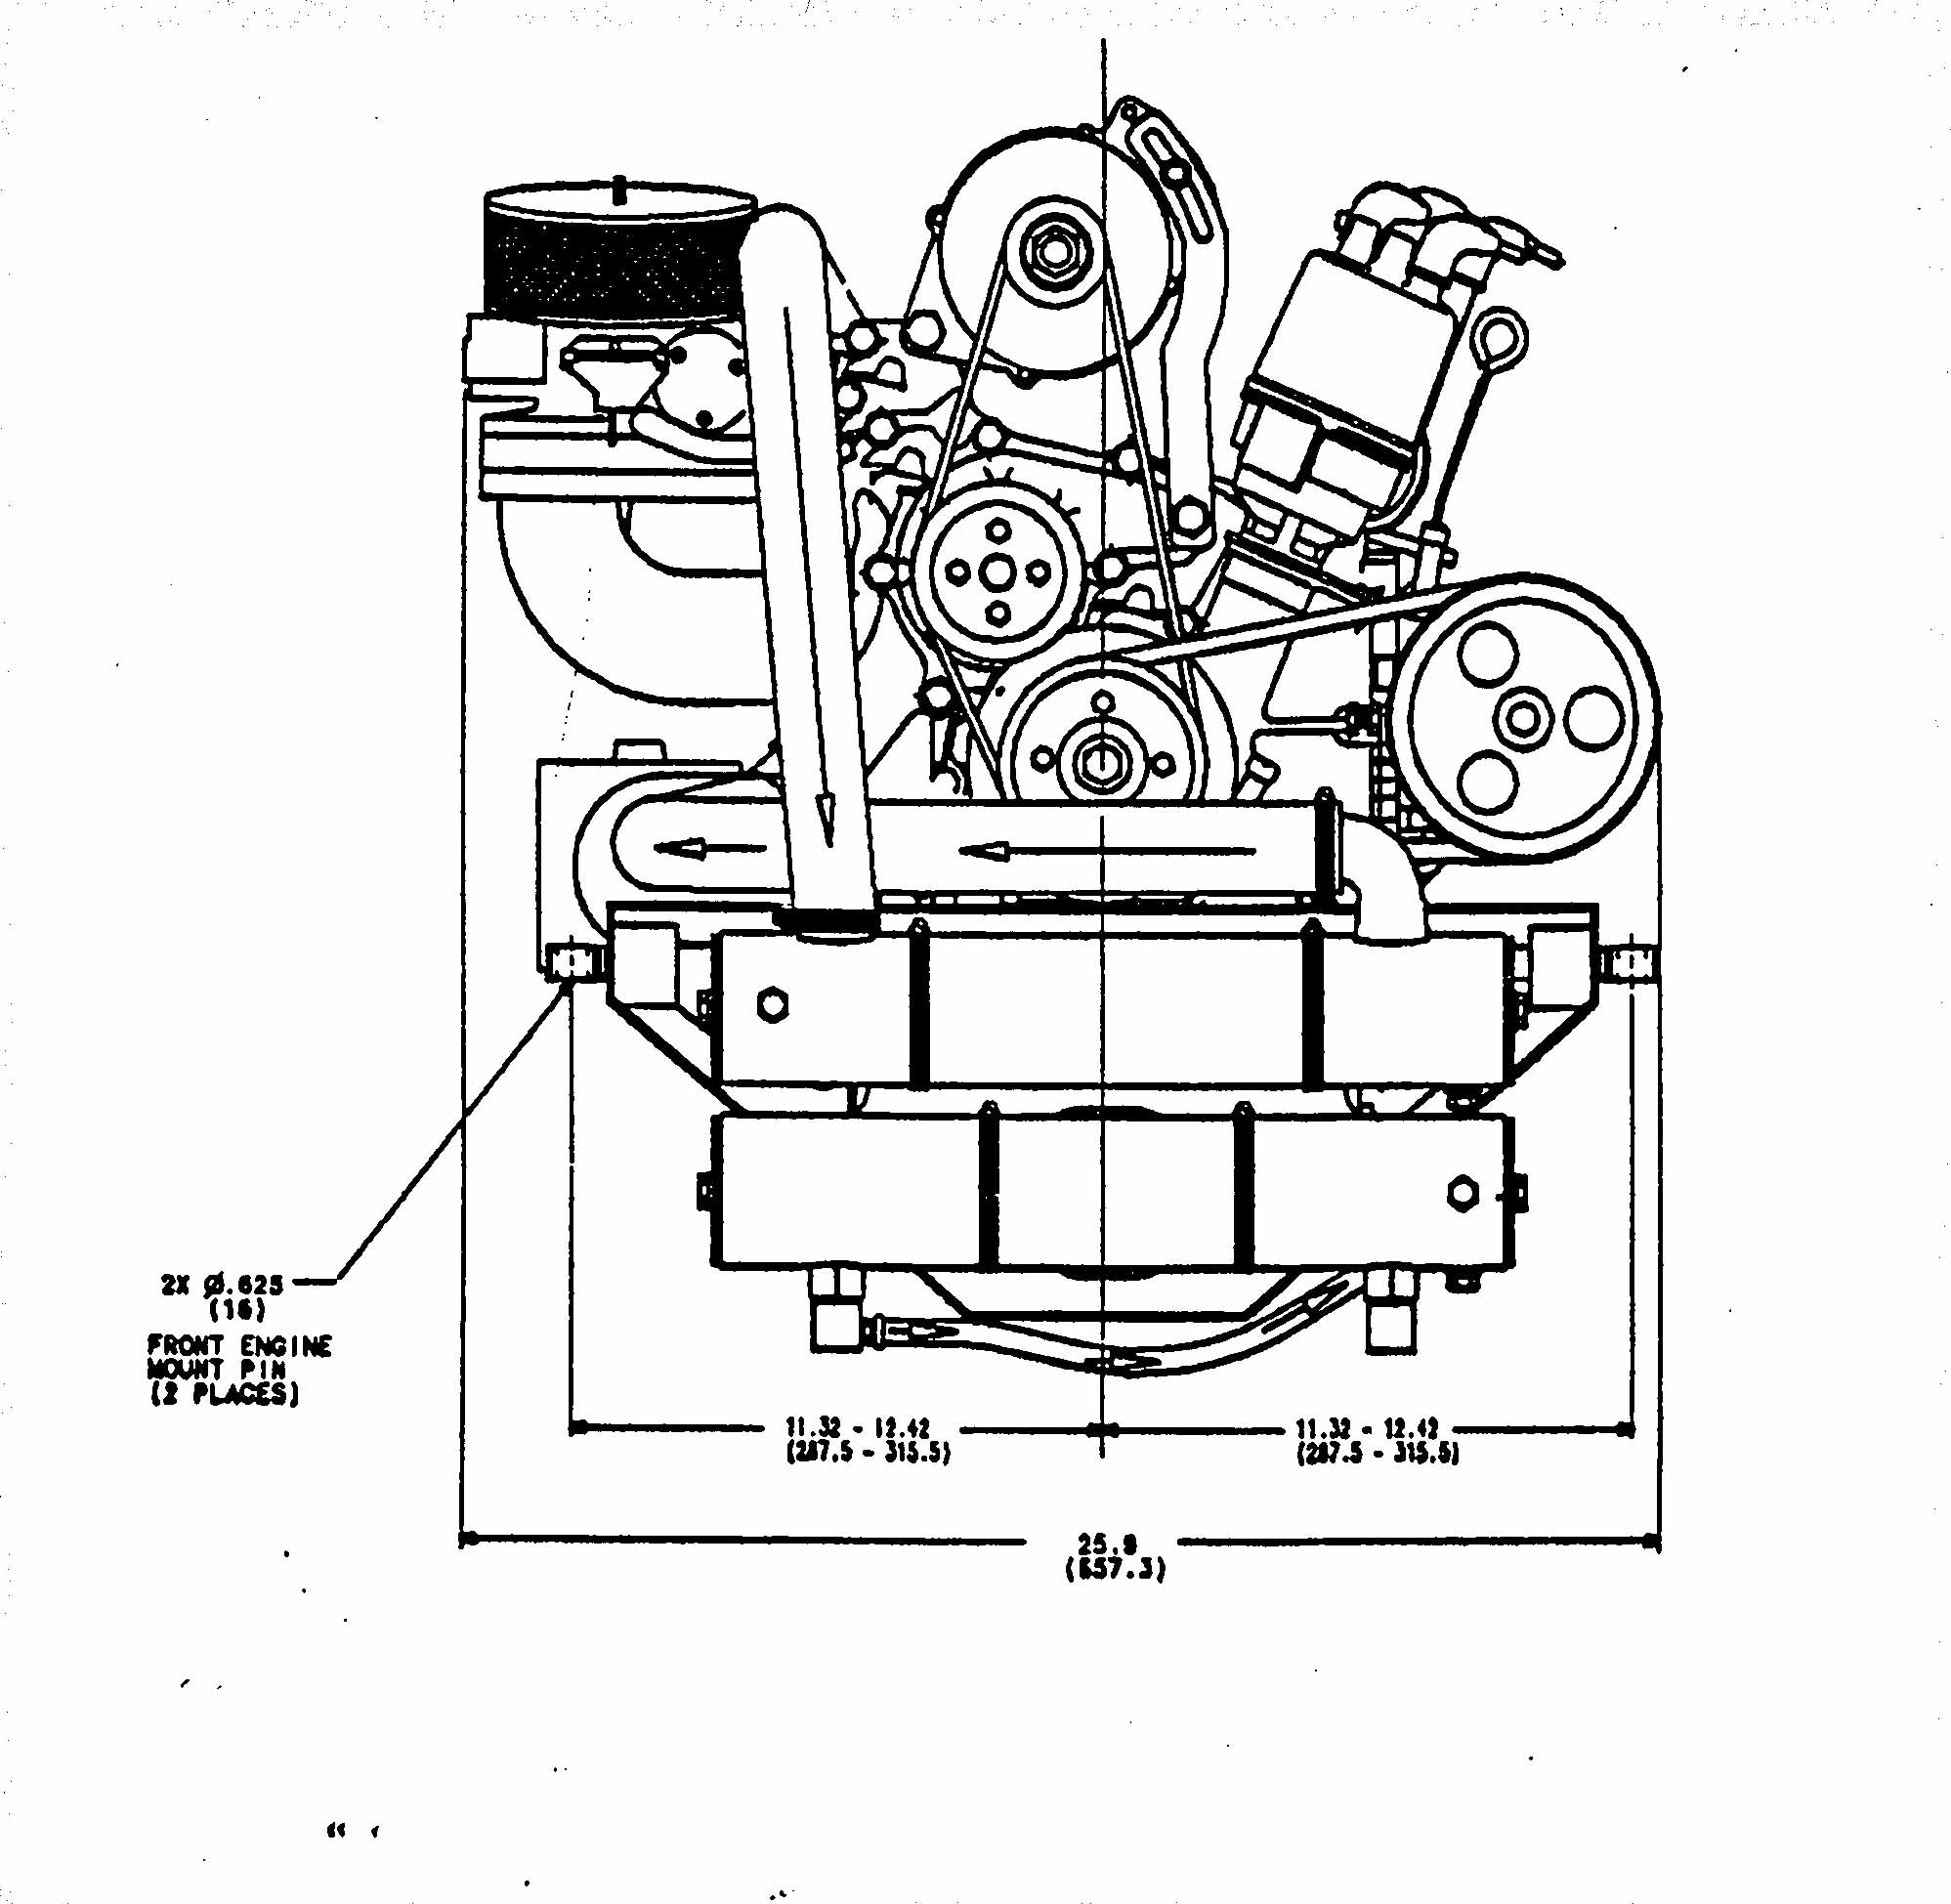 [DIAGRAM] Kenworth T880 Wiring Diagram FULL Version HD